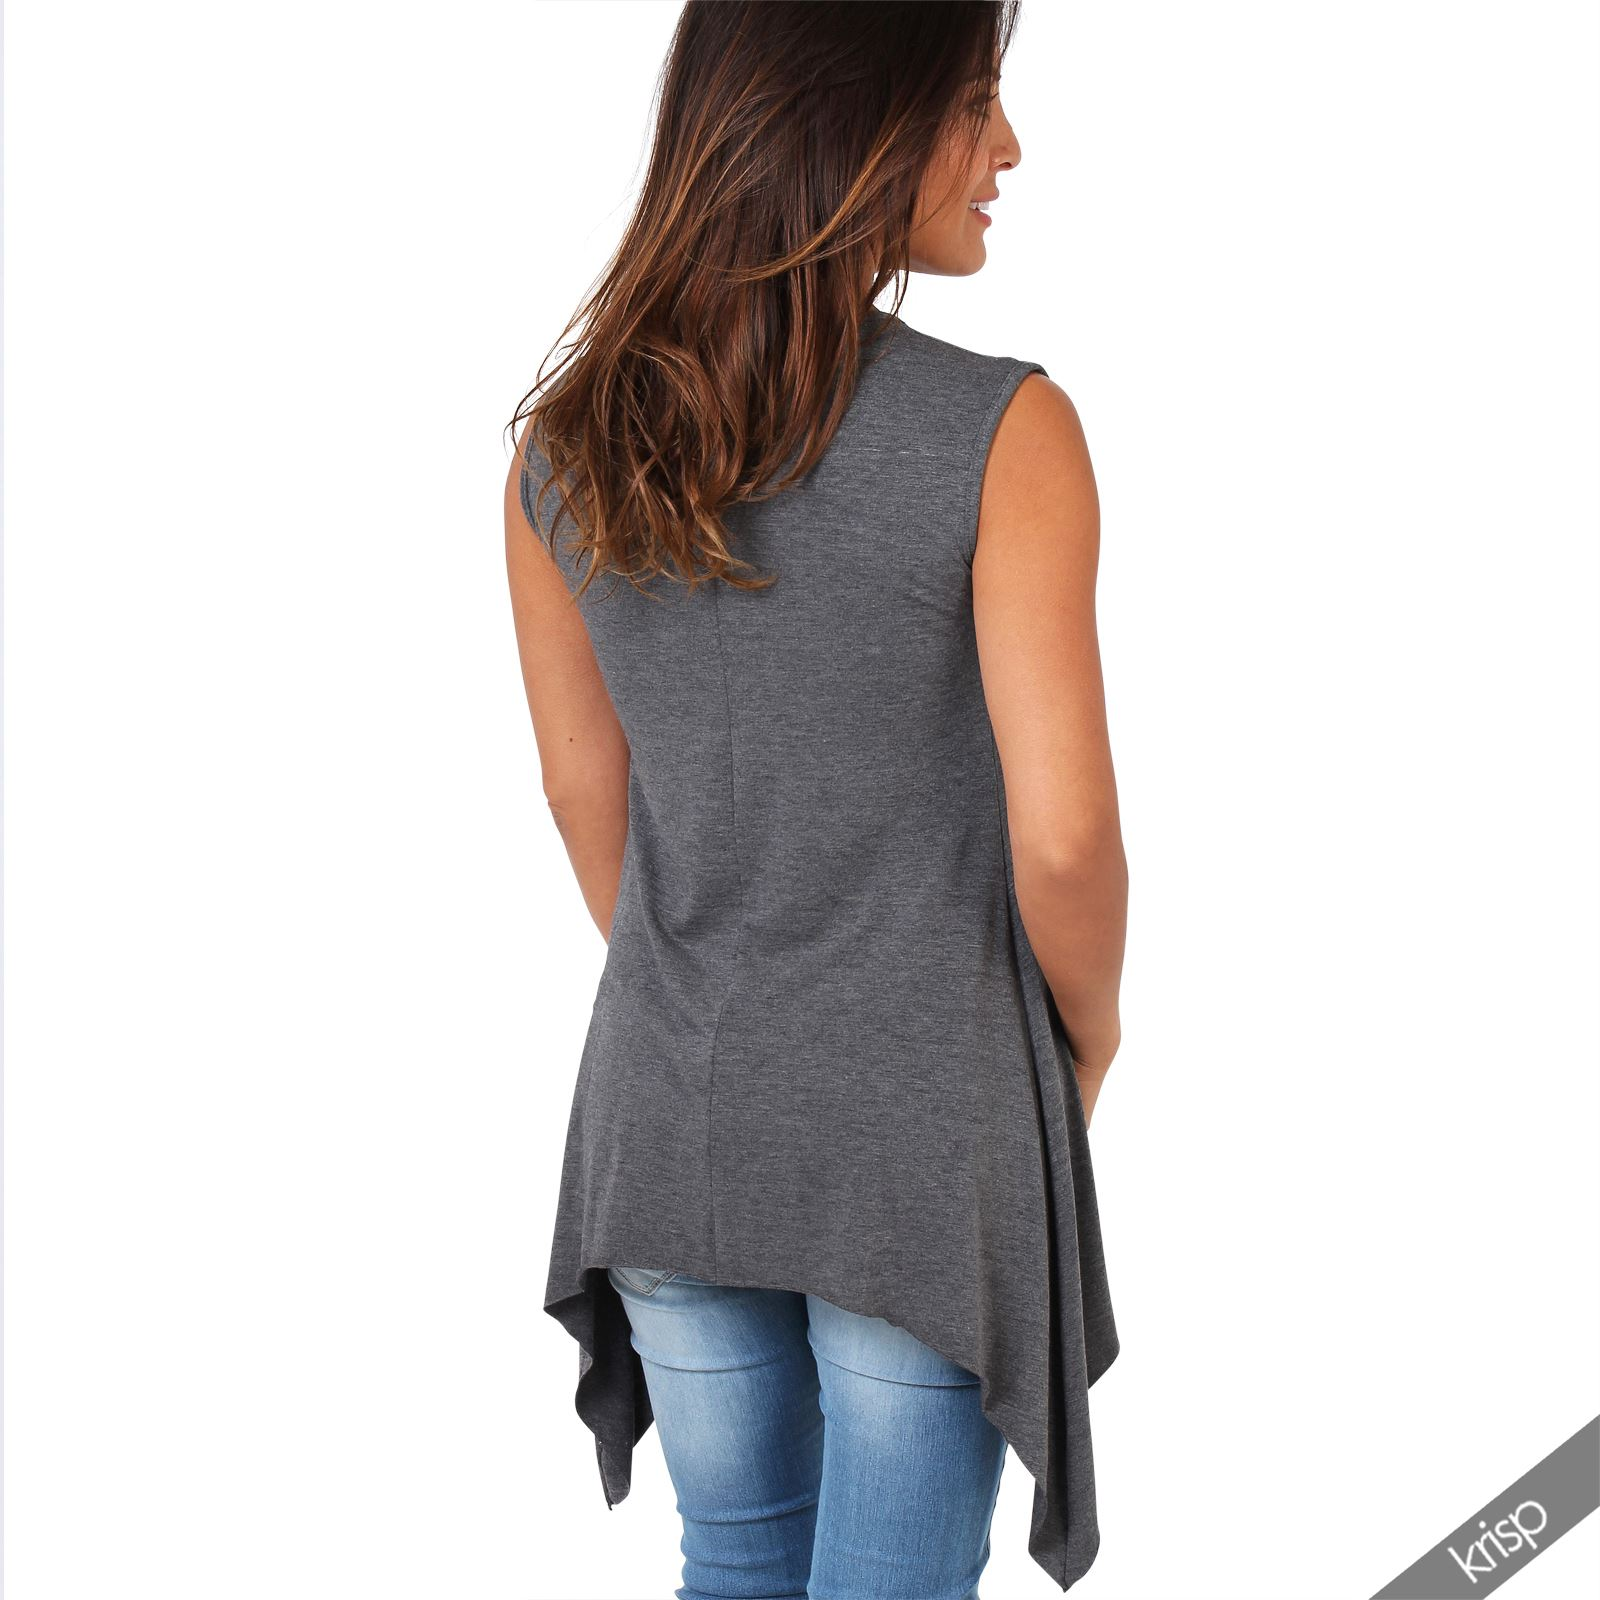 Women-Long-Top-Sleeveless-Pleated-Tee-Shirt-Tunic-Jersey-Stretch-Loose-Fit thumbnail 8